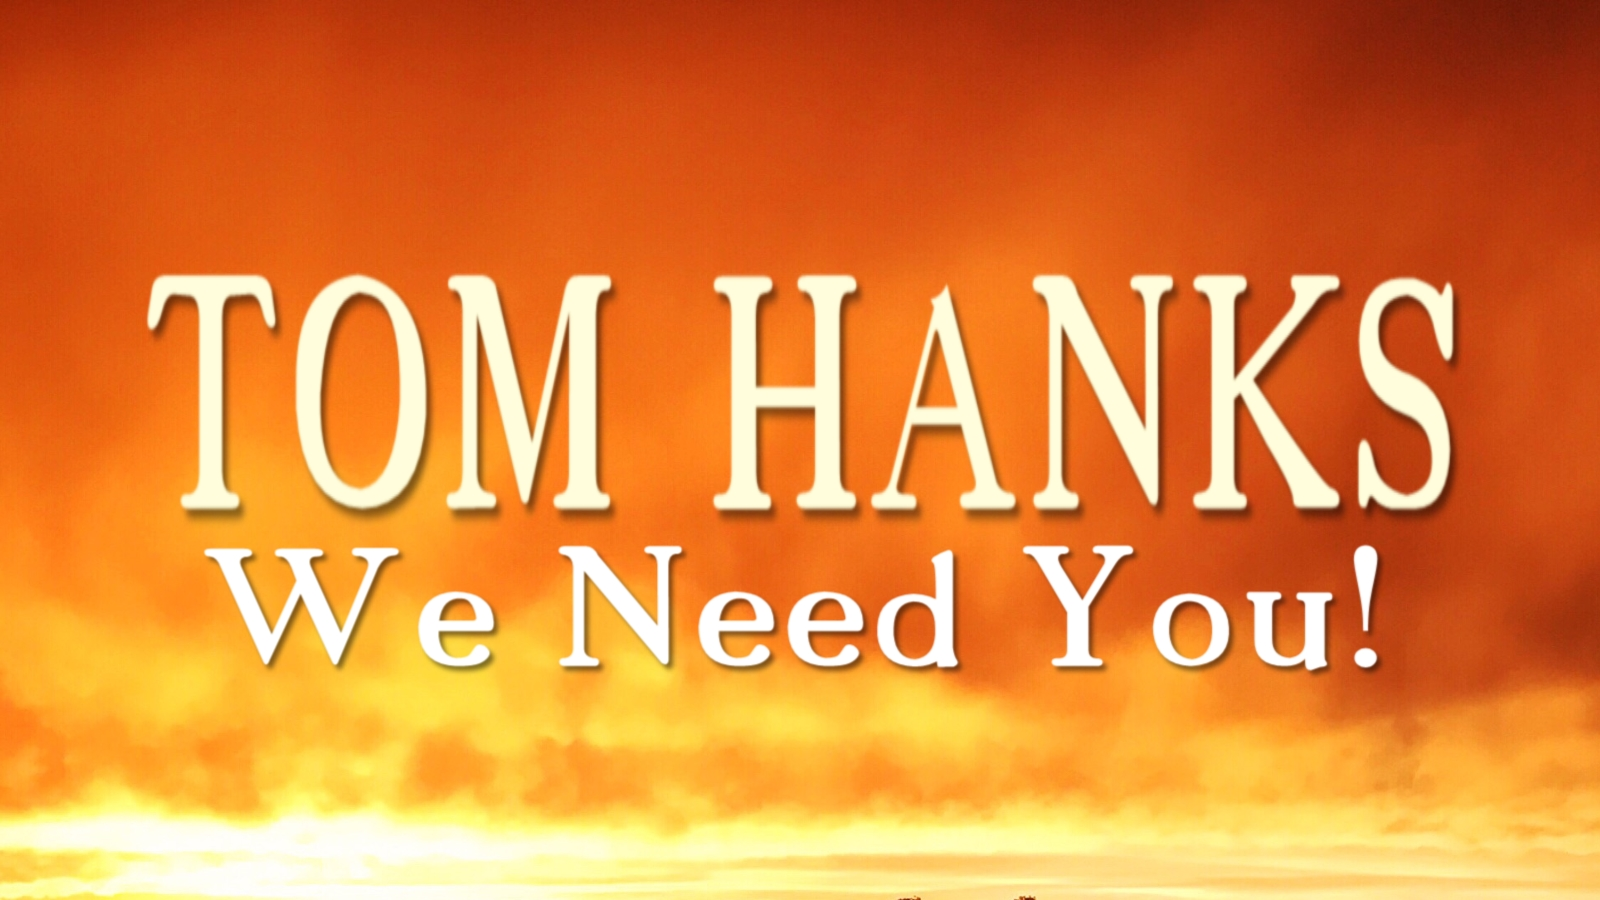 Tom Hanks, We Need You